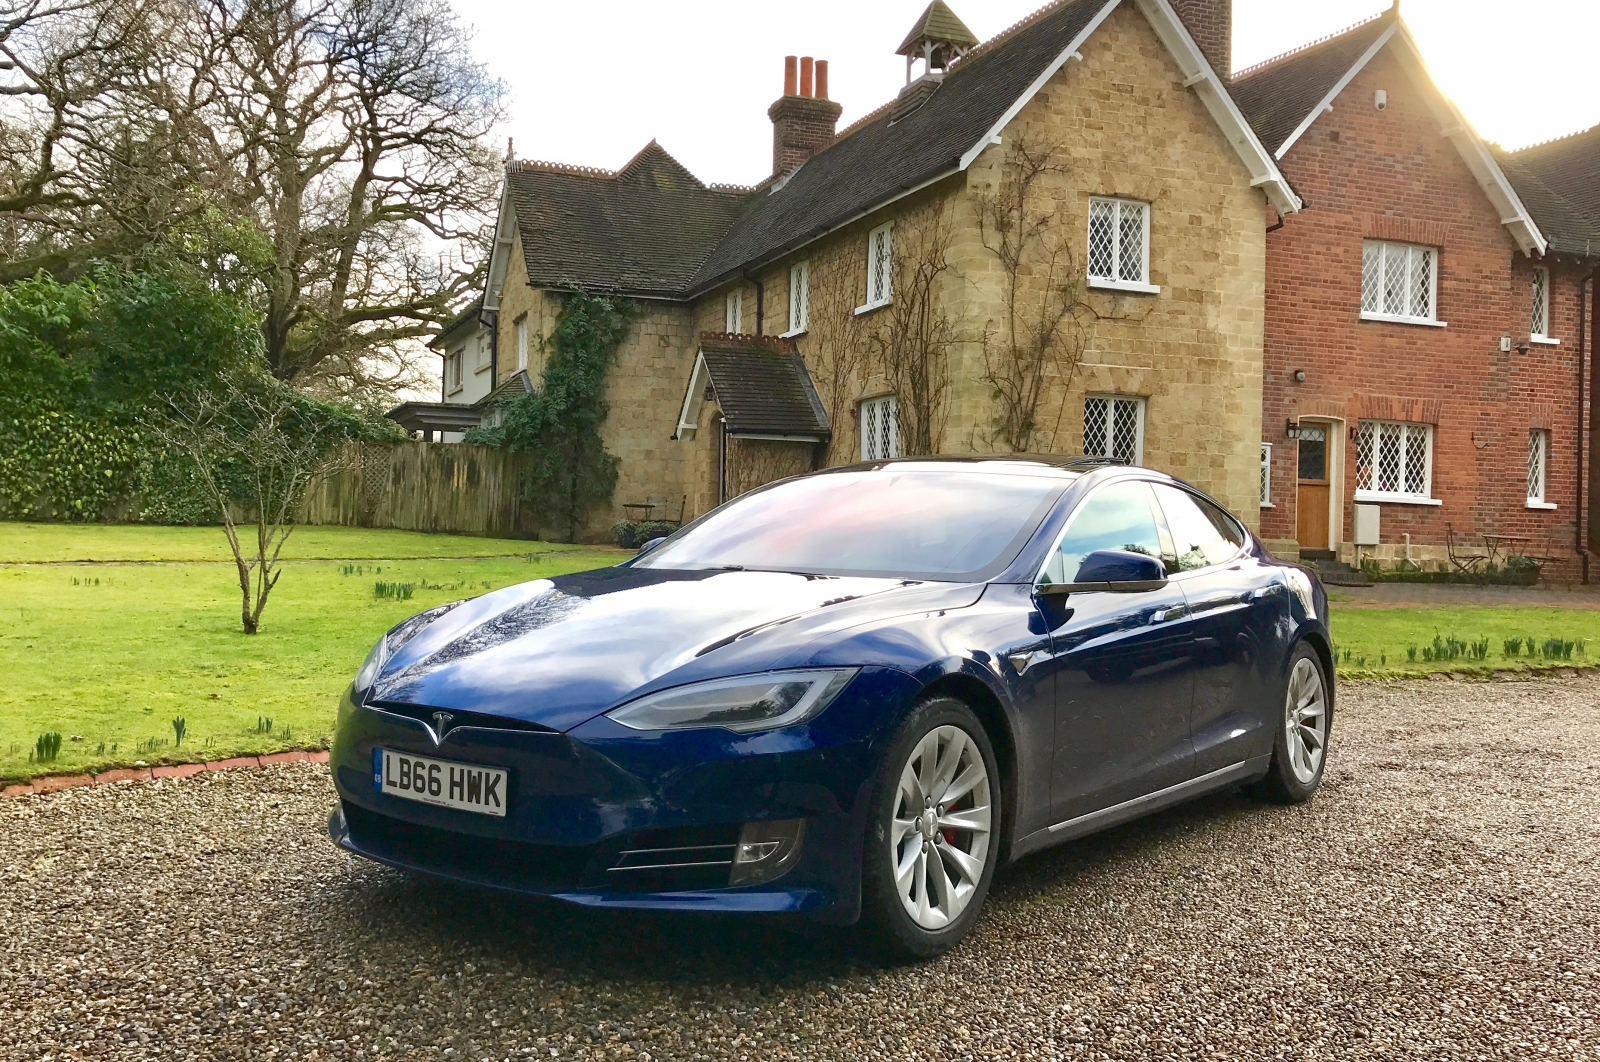 What Is The Fastest Production Car In The World >> Tesla Model S P100DL review: Behind the wheel of the world's quickest car